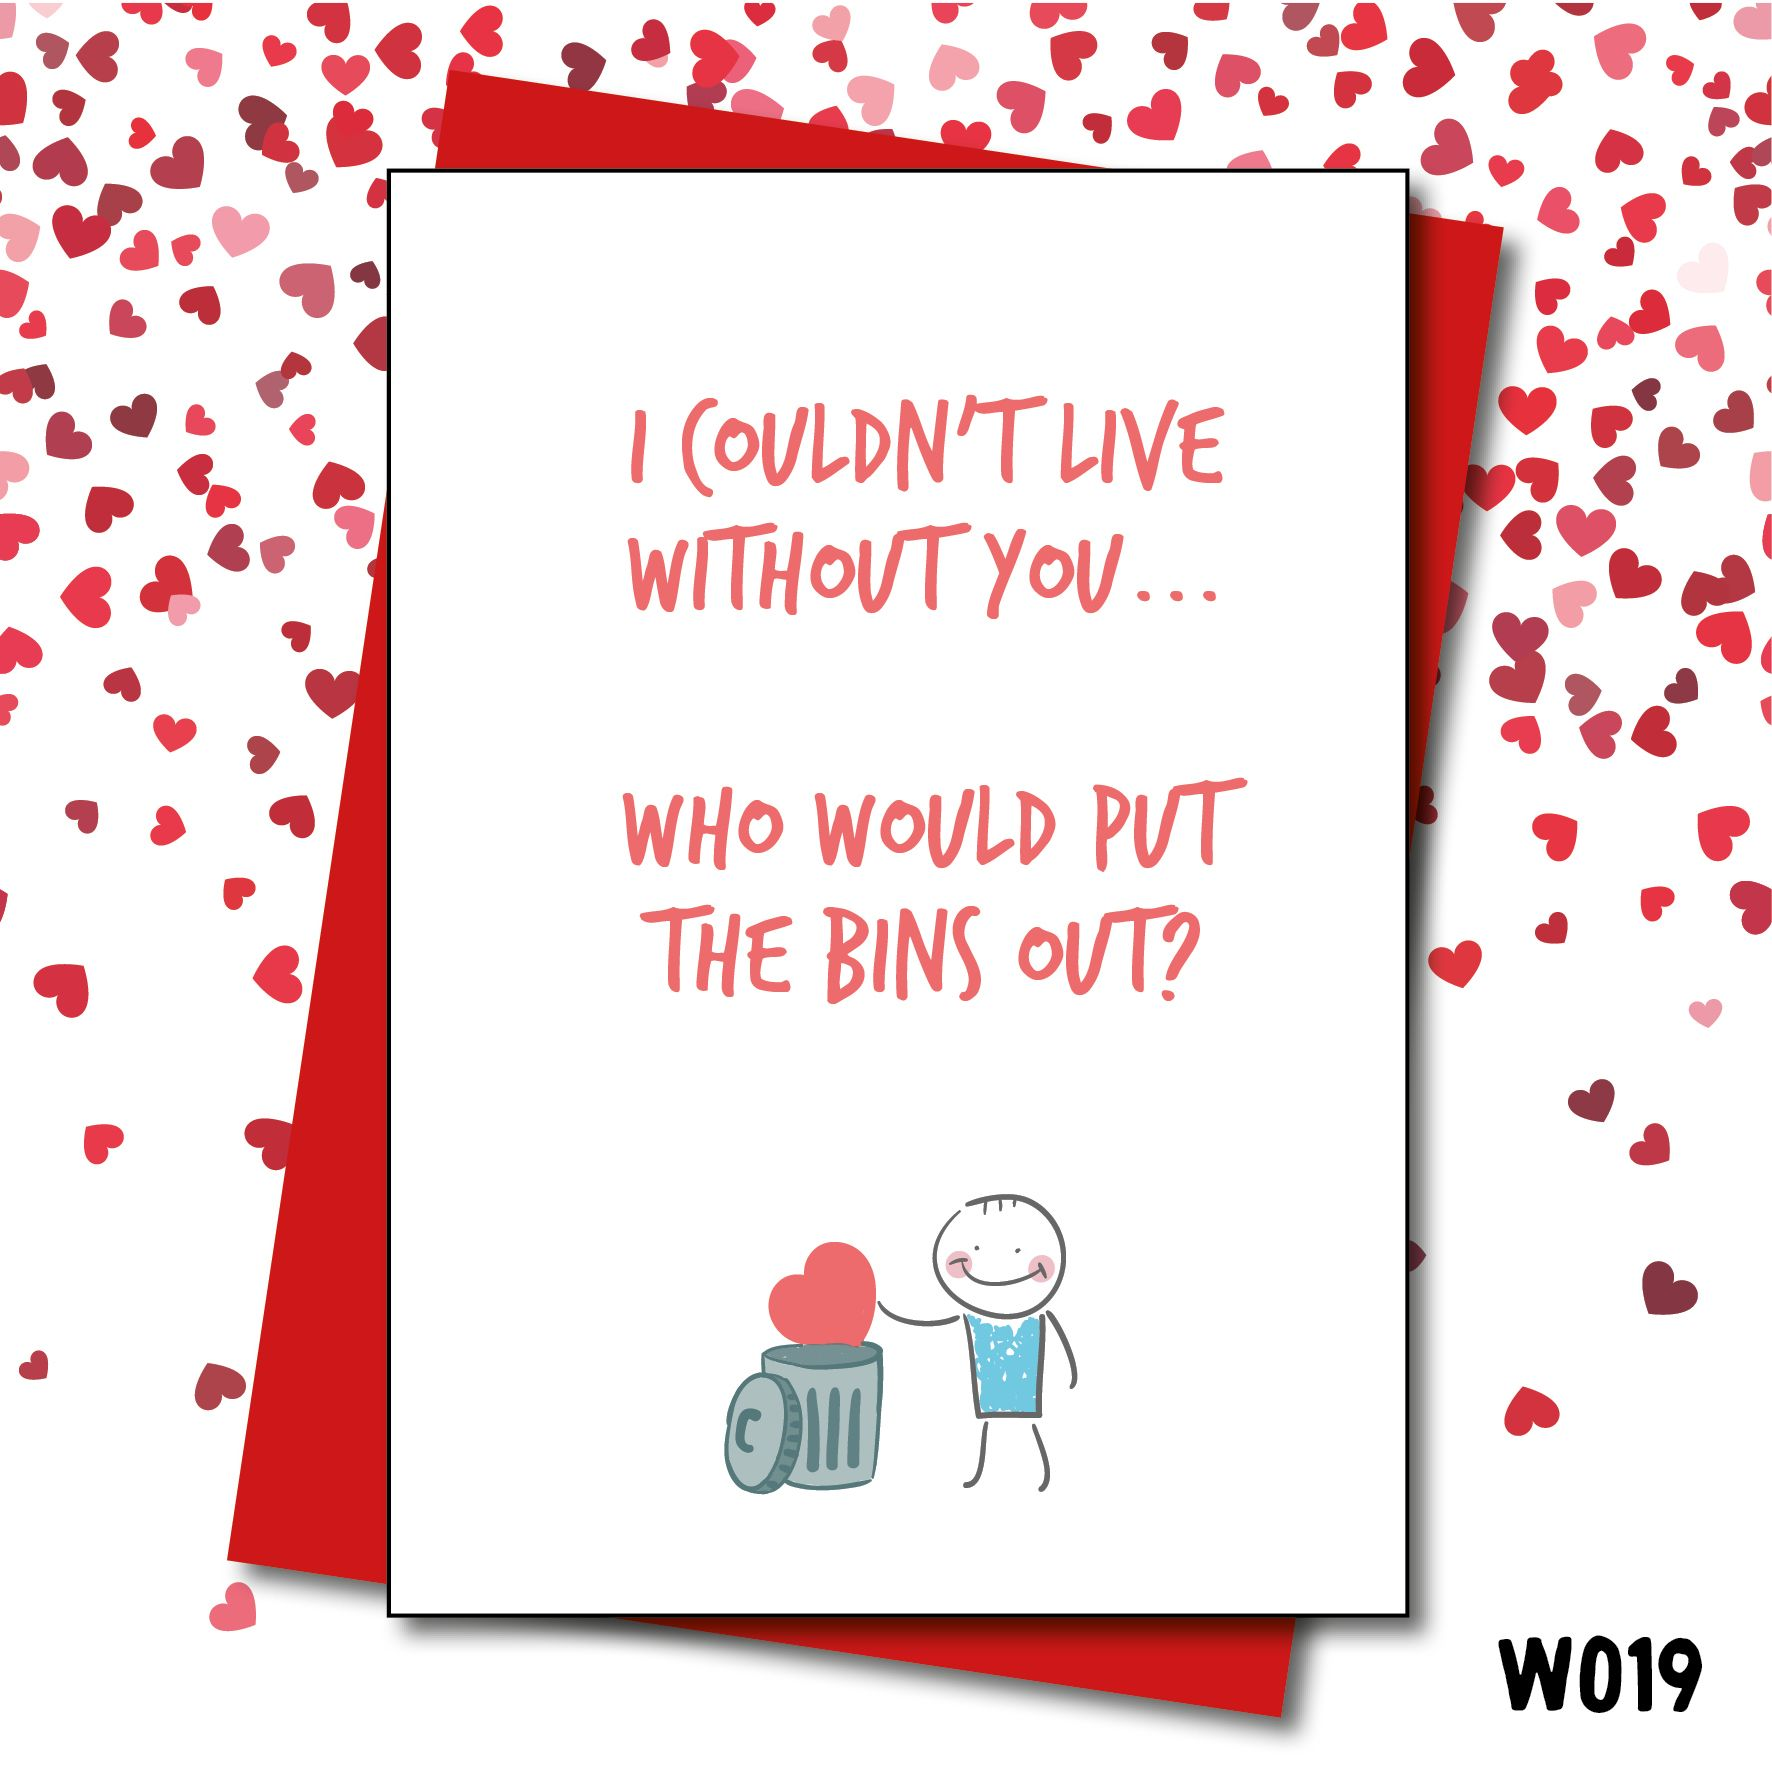 The Bins Out Couldntlivewithoutyou Thebinsout Valentine